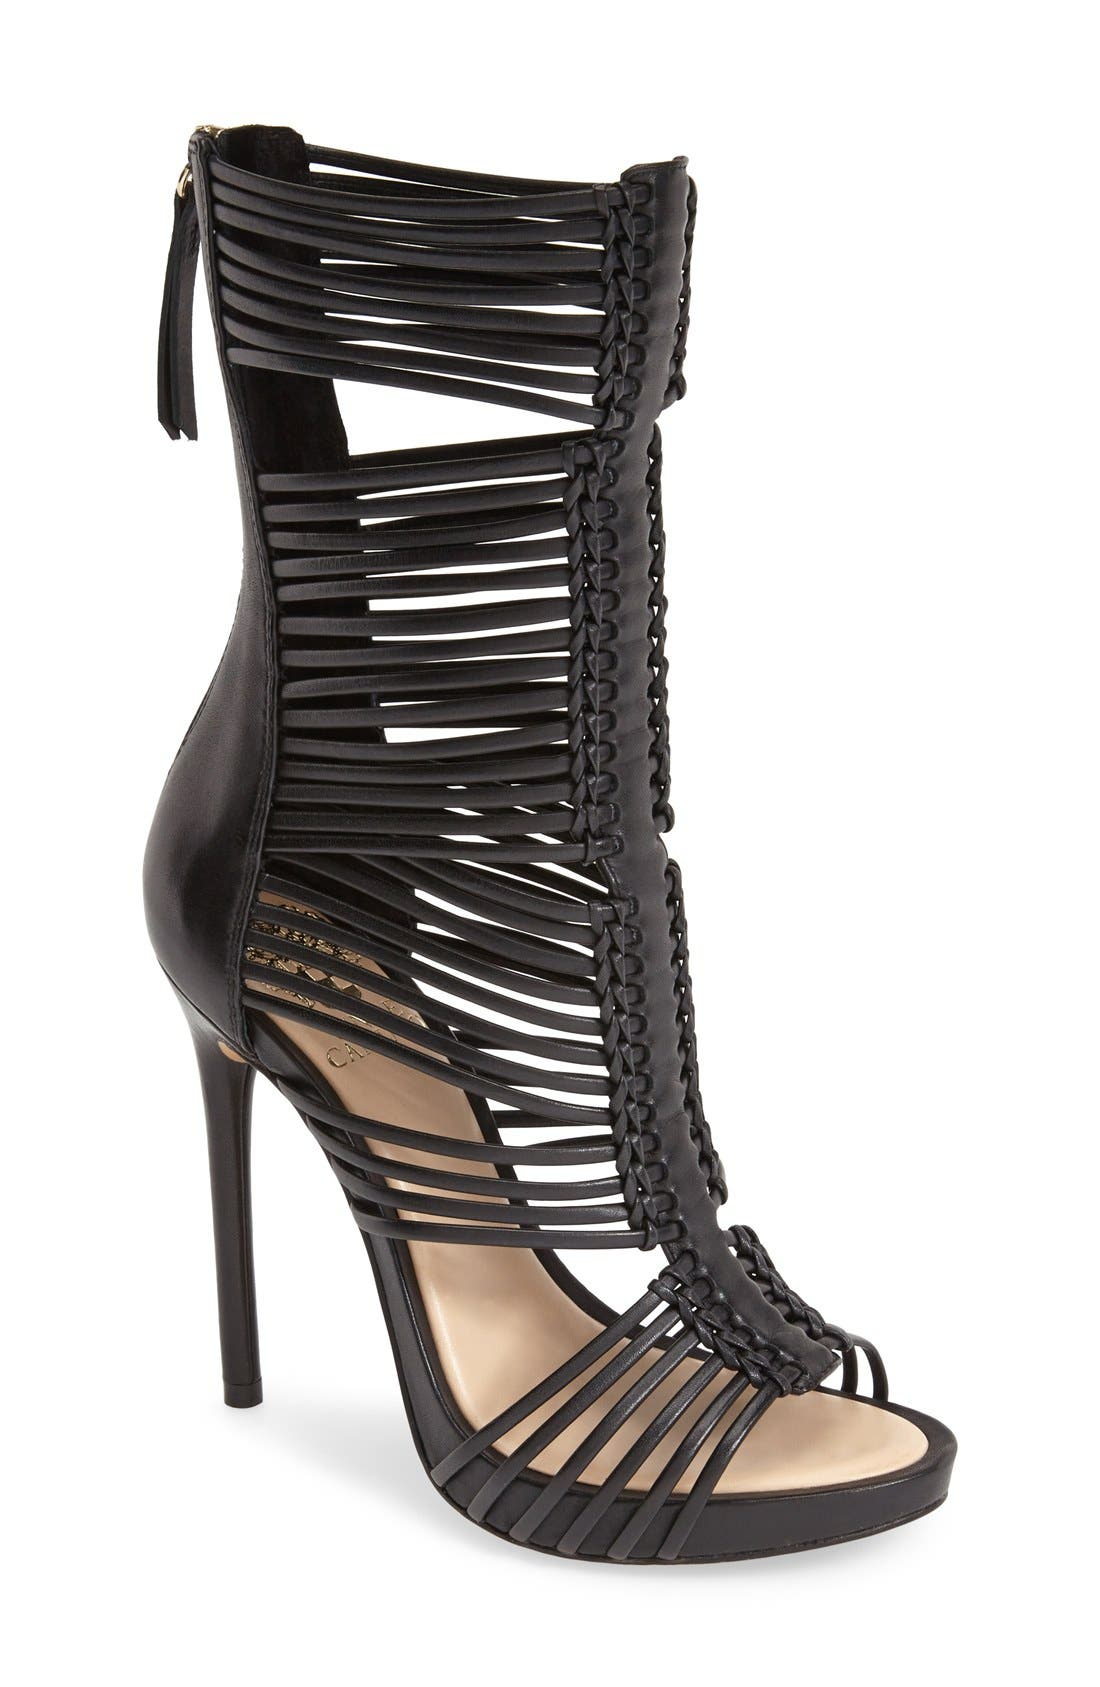 Main Image - Vince Camuto 'Barbara' Strappy Caged Leather Sandal (Women)